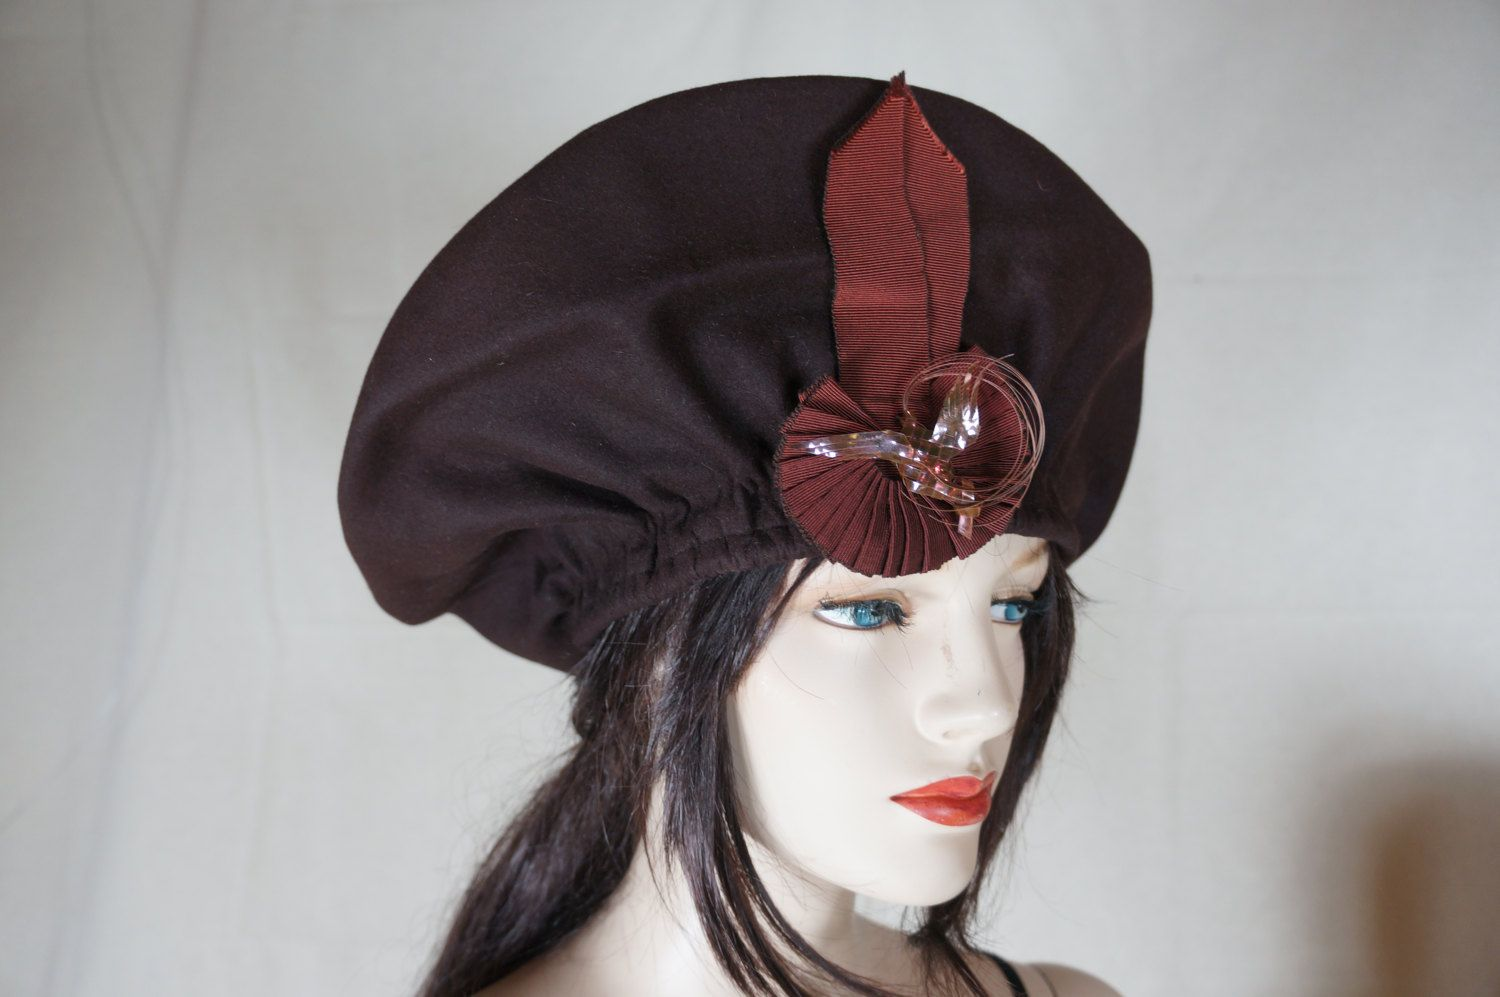 d297df3ca4a Rare 1940s Millinery Over Sized Wool Beret Architectural Hat